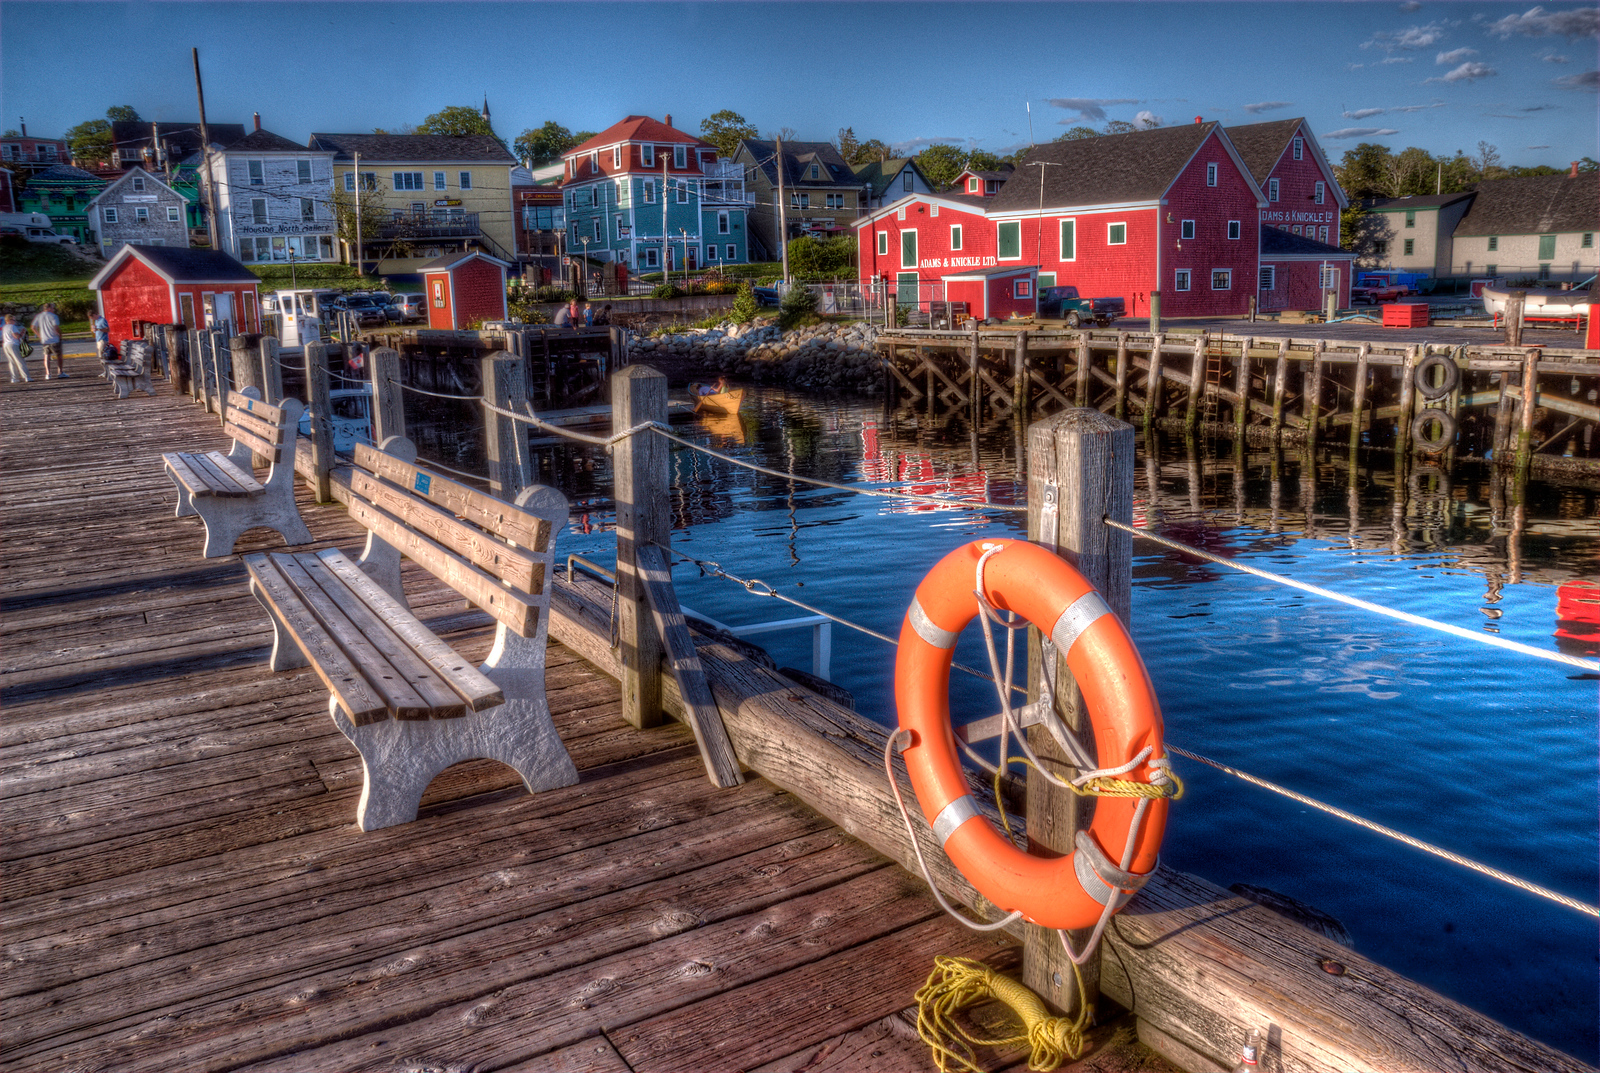 Old Town Lunenburg UNESCO World Heritage Site